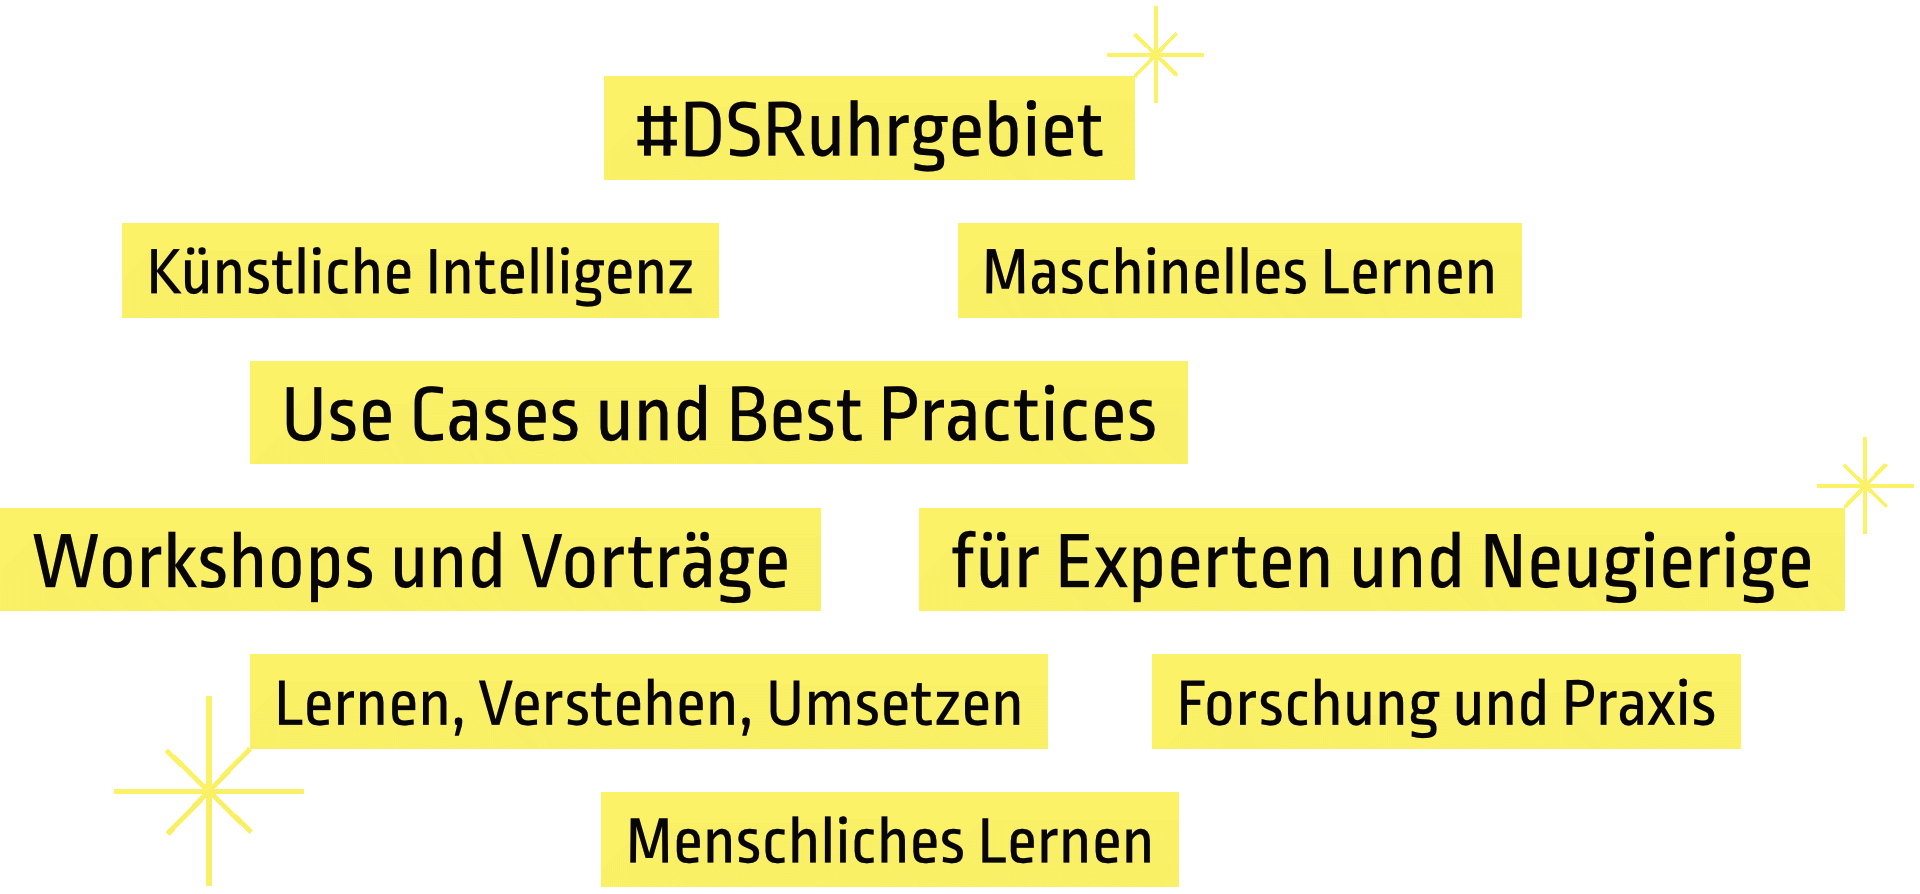 Keywords DATA SCIENCE RUHRGEBIET 2020